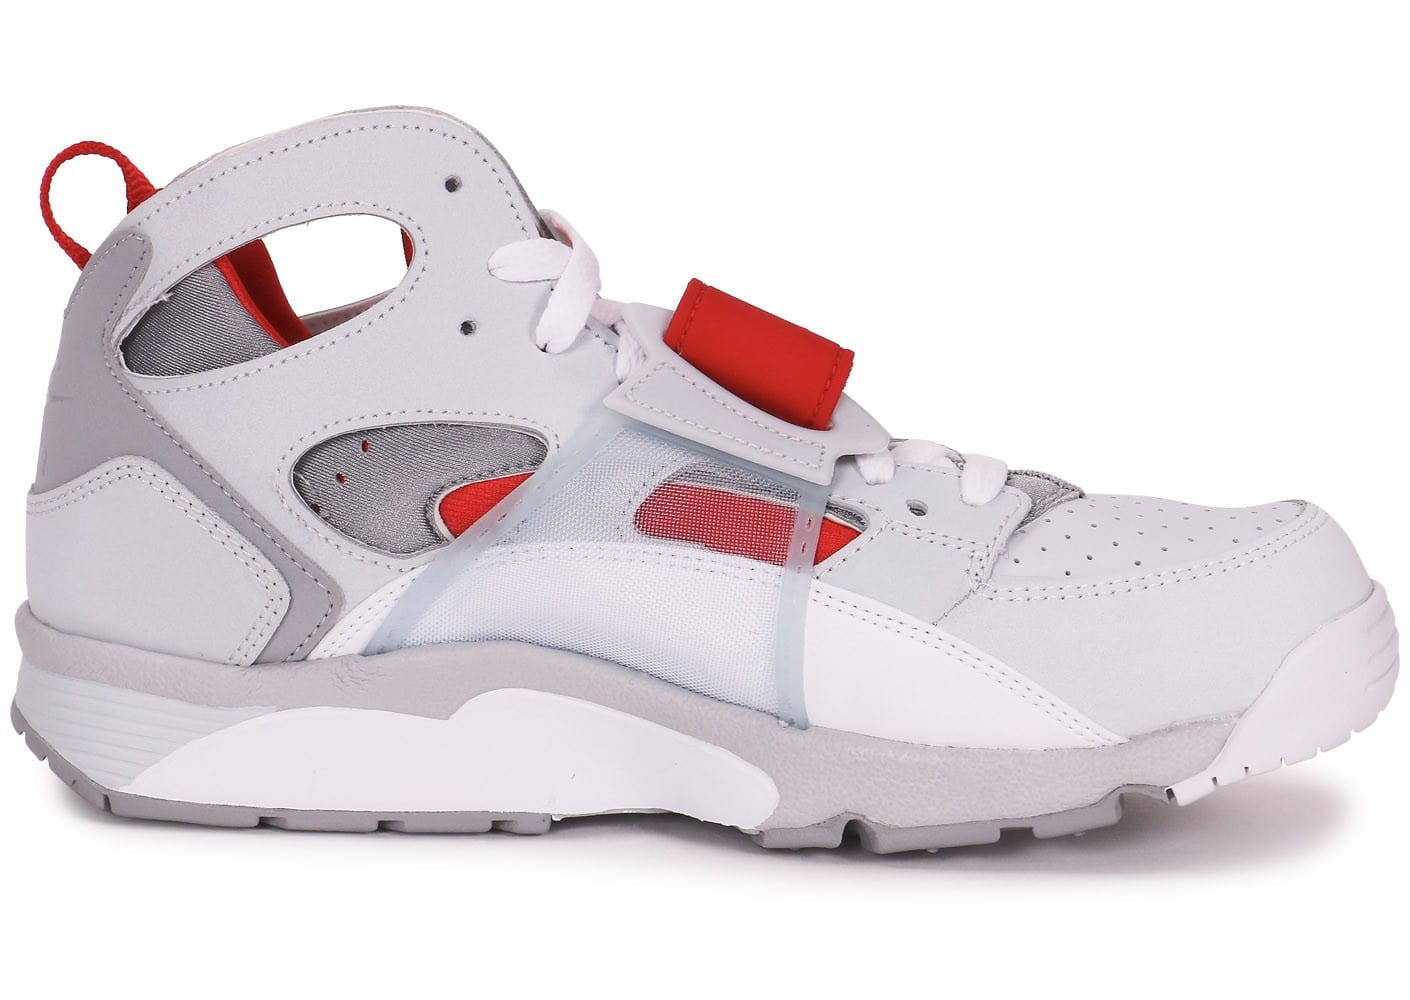 nike air trainer huarache blanche et rouge chaussures homme chausport. Black Bedroom Furniture Sets. Home Design Ideas